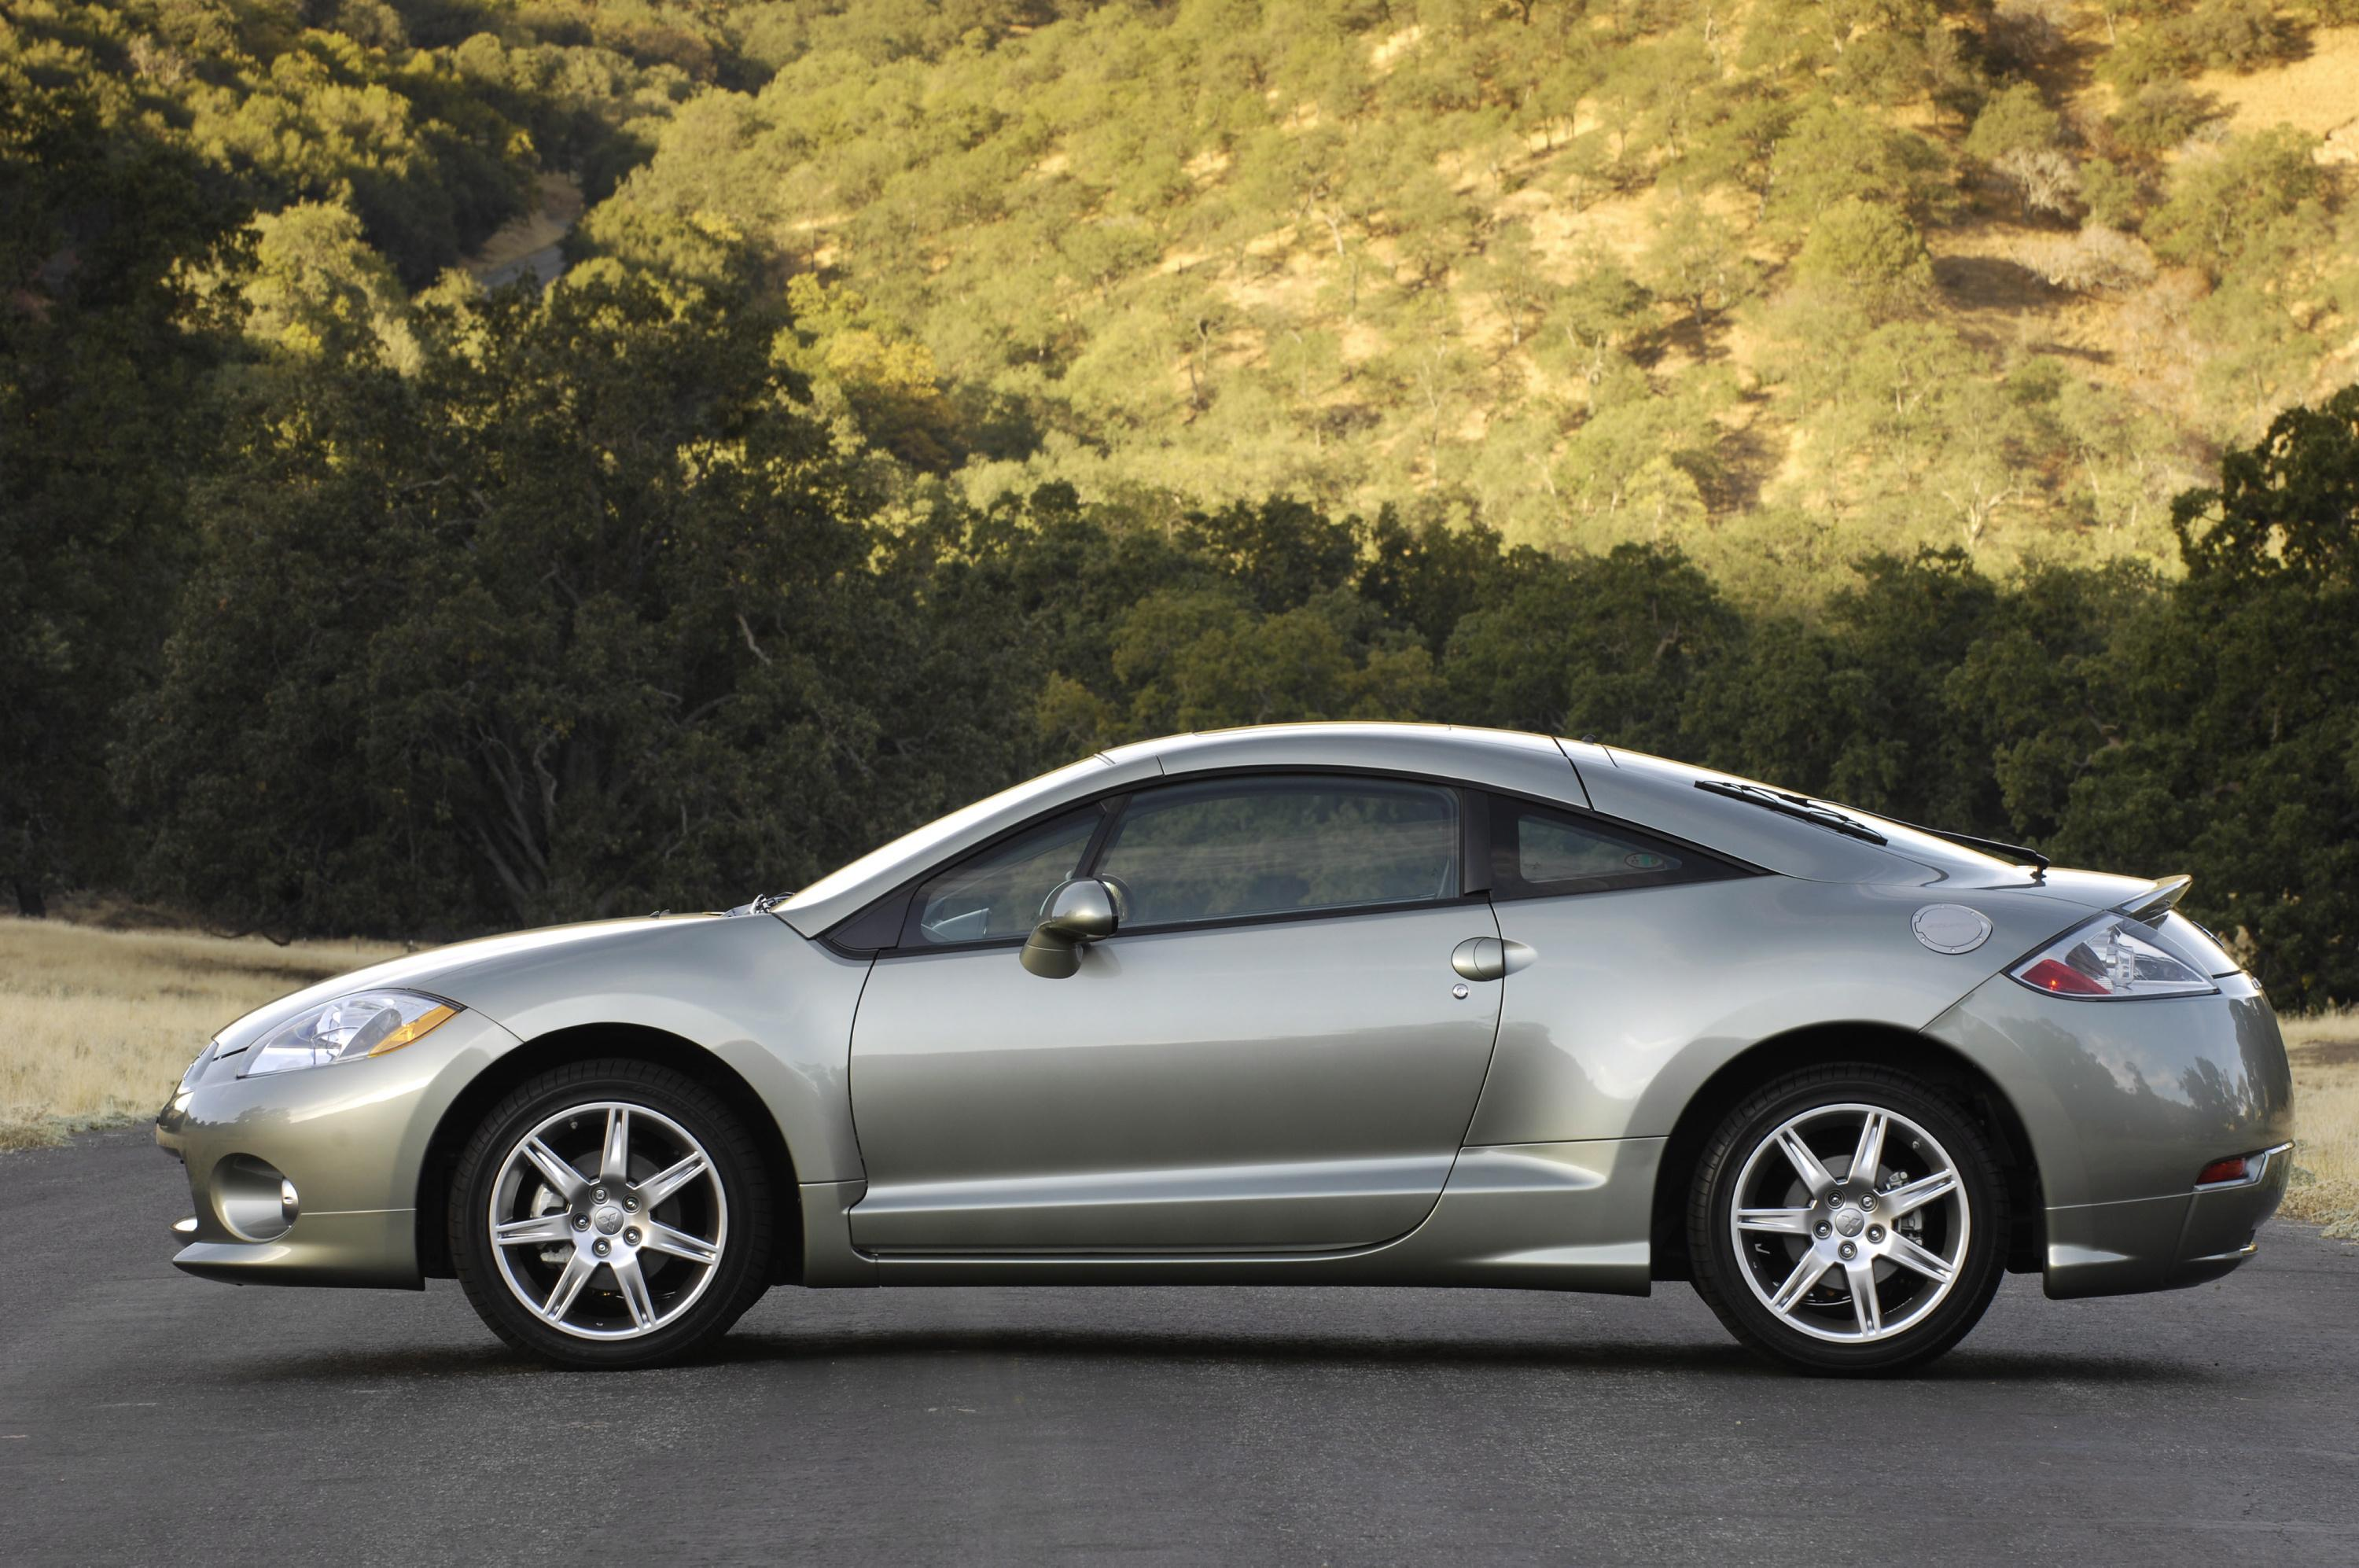 2008 Mitsubishi Eclipse | Top Speed